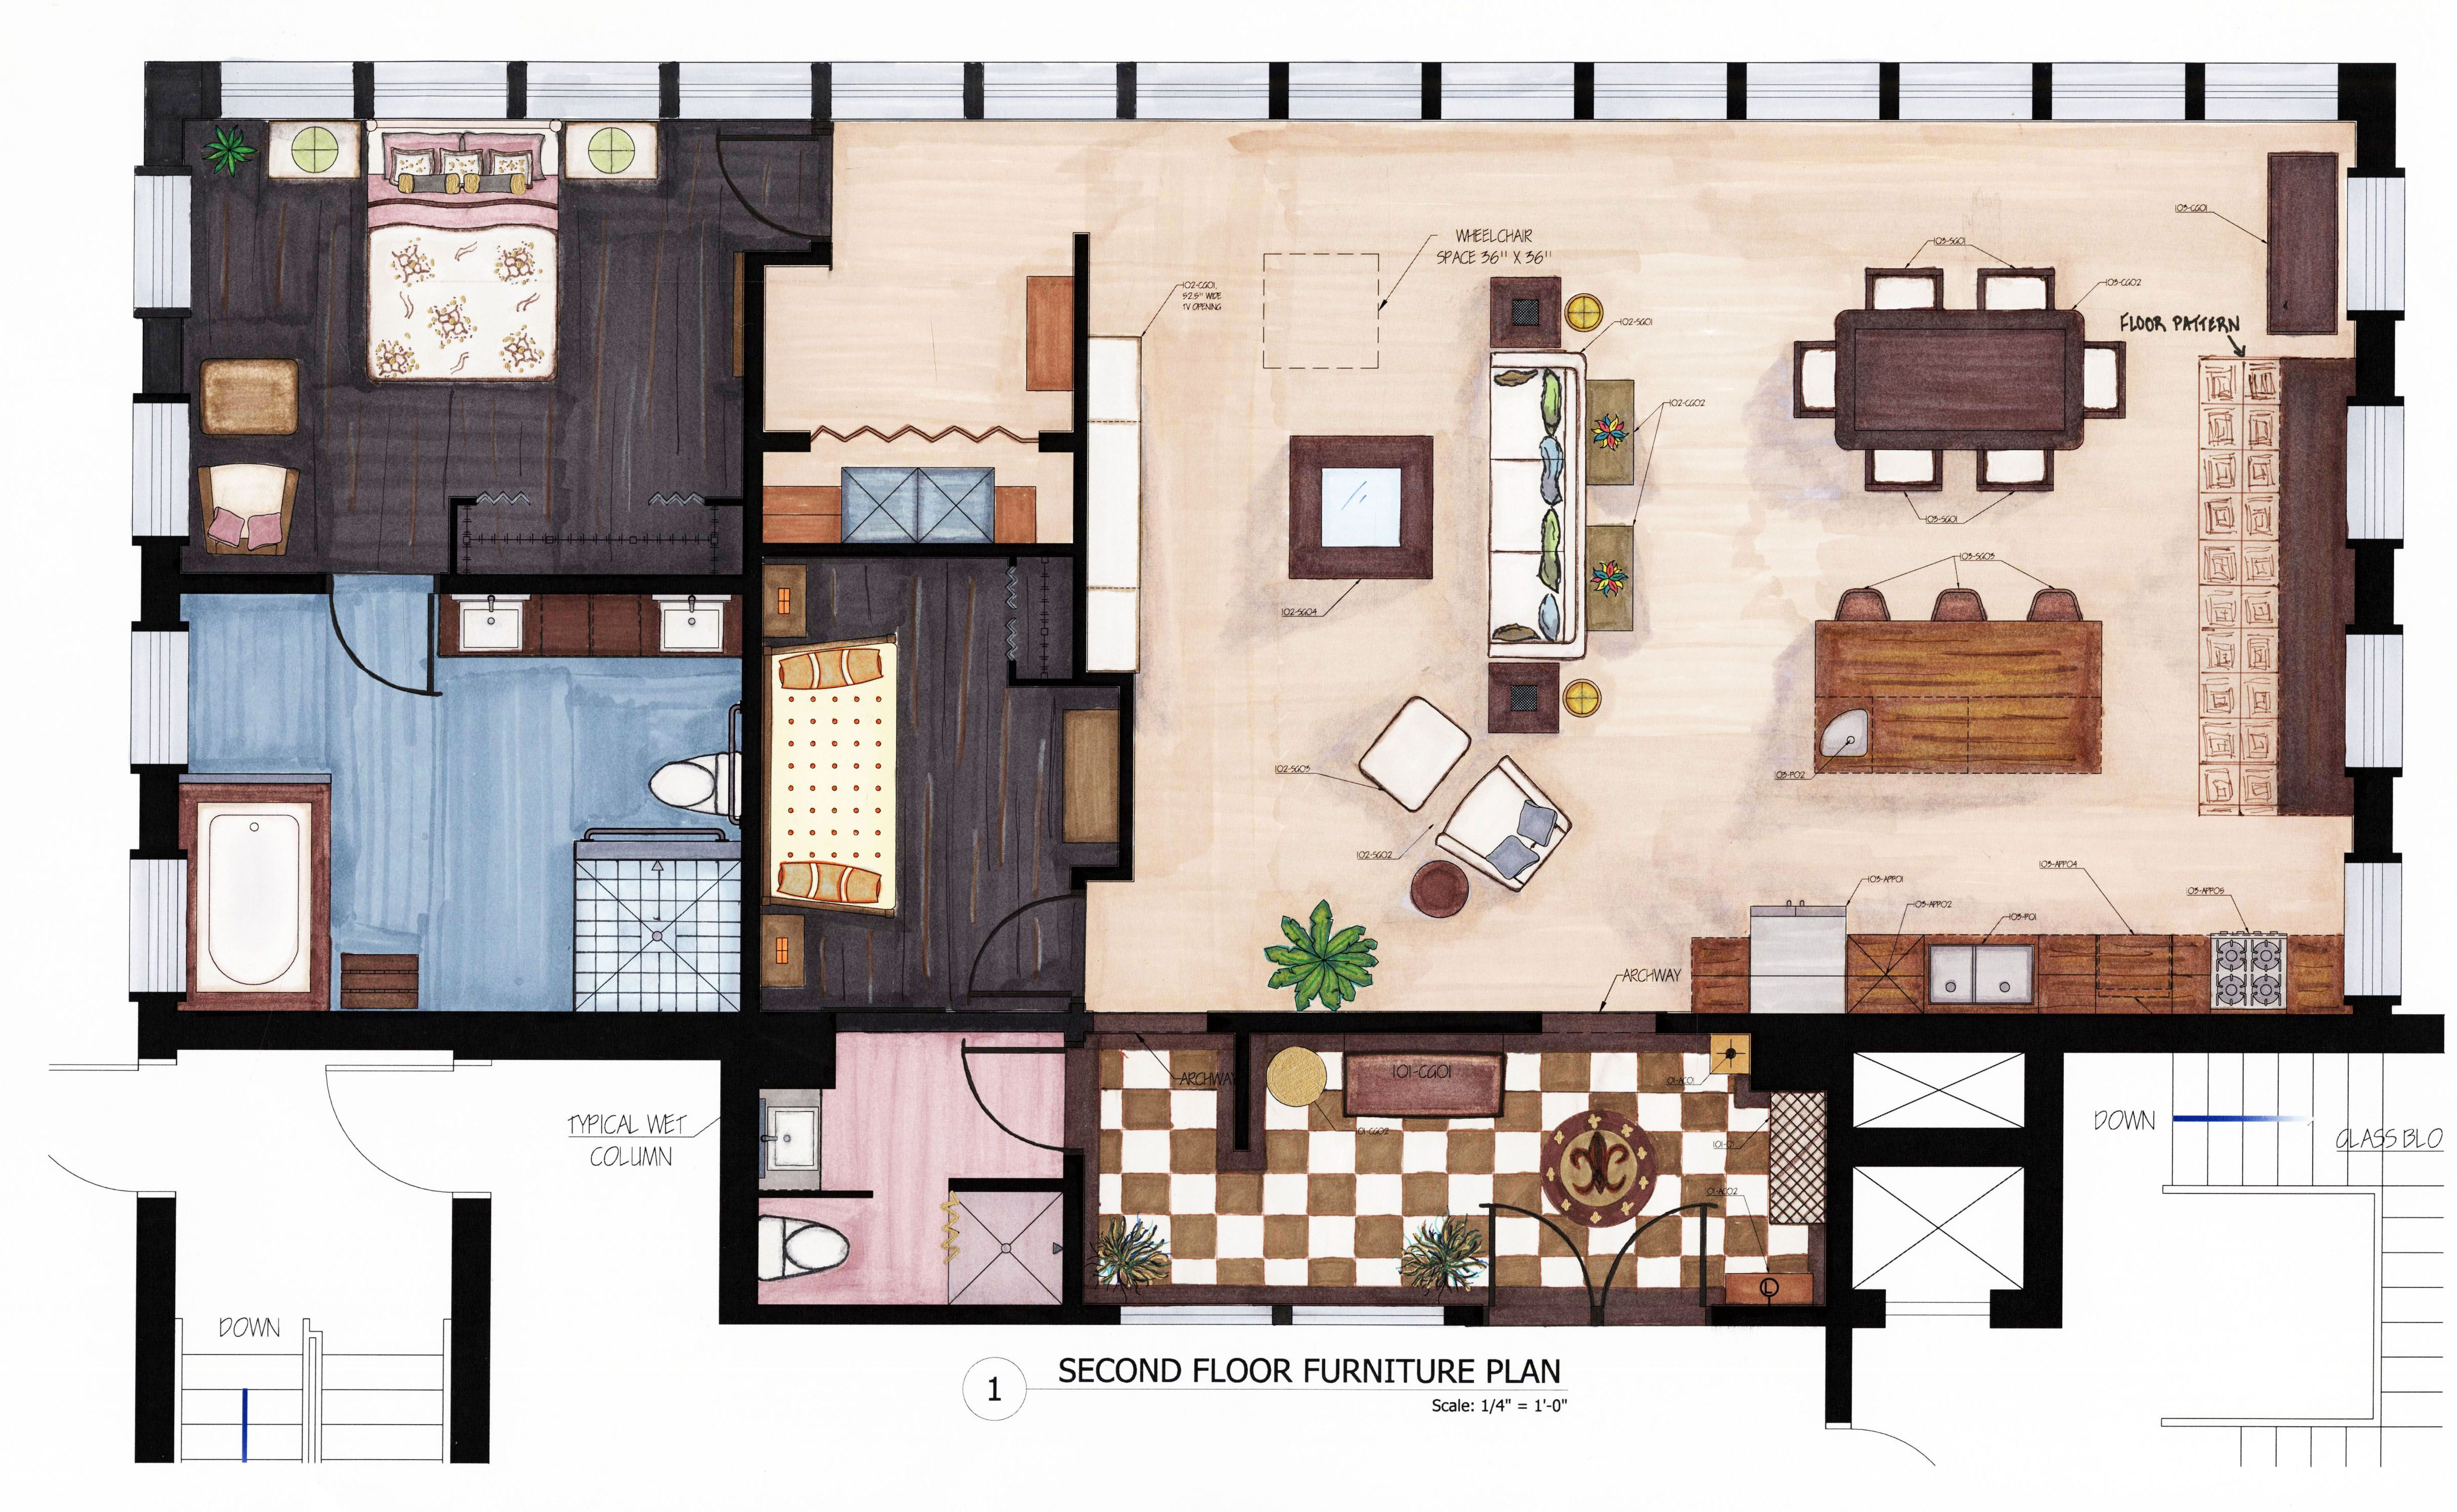 Eames Chair Autocad Block Rendered Floor Plan Autocad This Is A Furniture Plan I